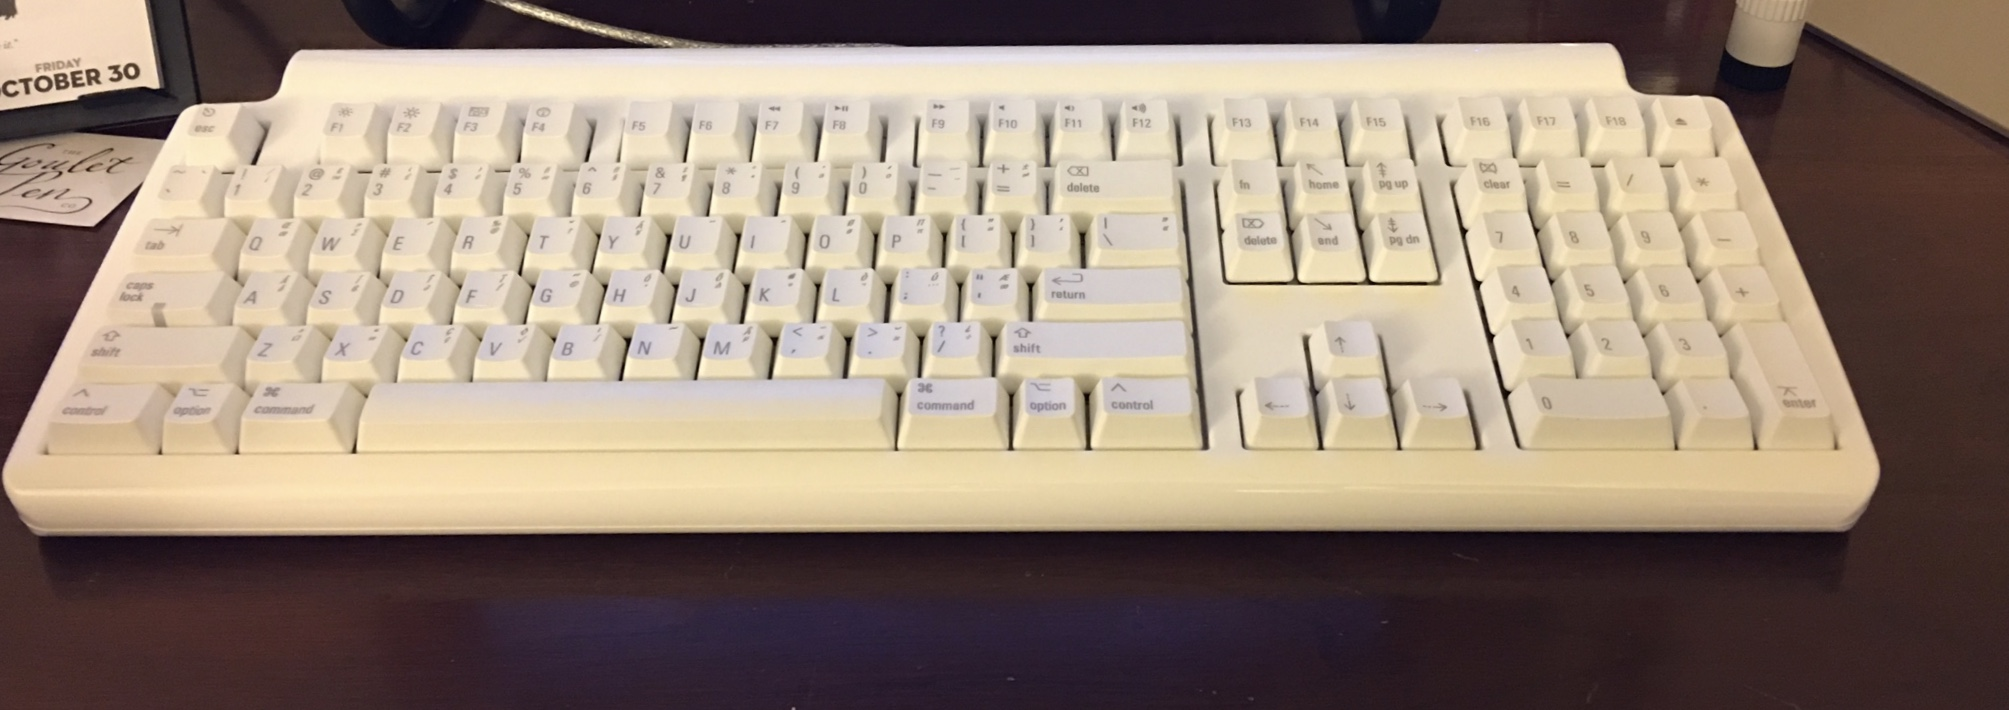 The Matias Tactile Pro v.4 Mechanical Keyboard on my desk. It's big, ugly, and awesome.